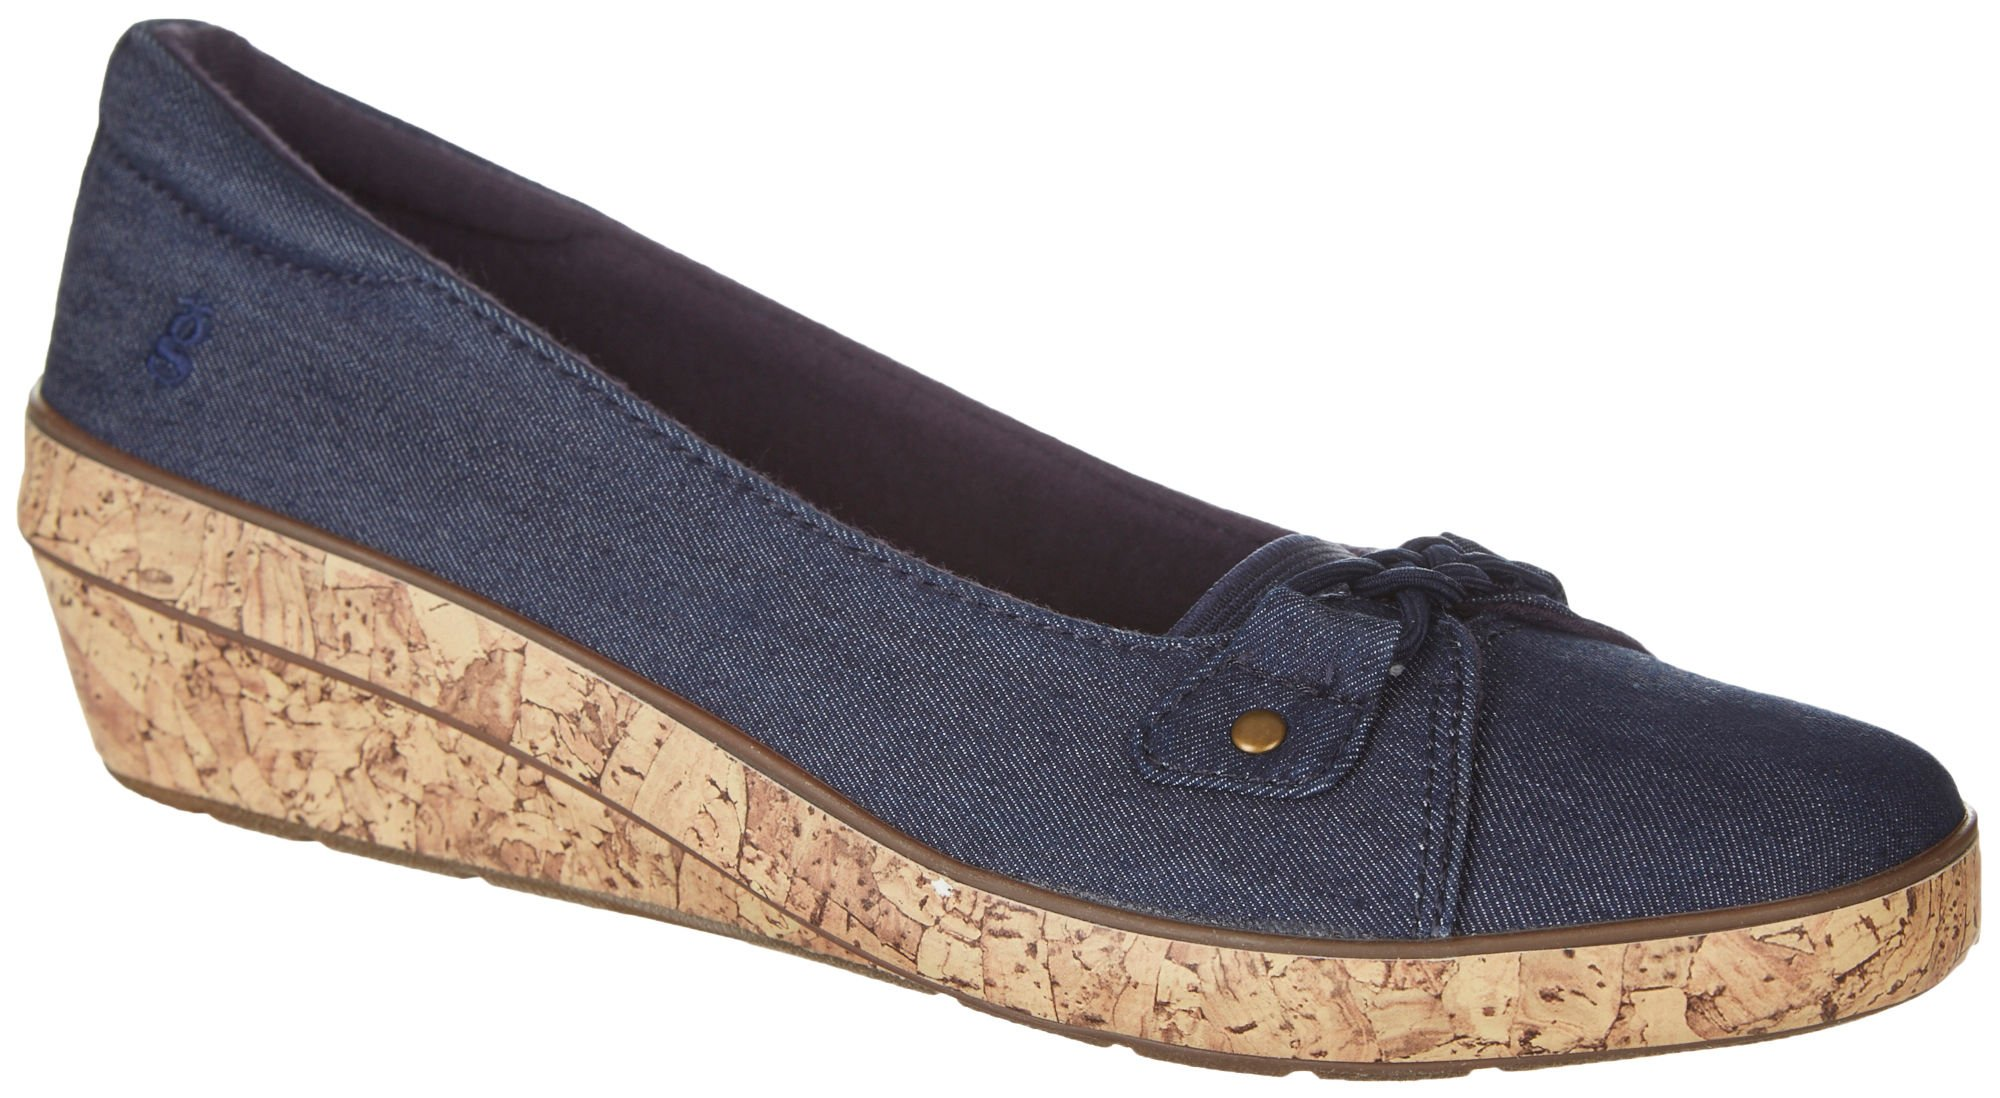 Grasshoppers Women's Lily Wedge Sneaker, Peacoat Navy, 7.5 M US